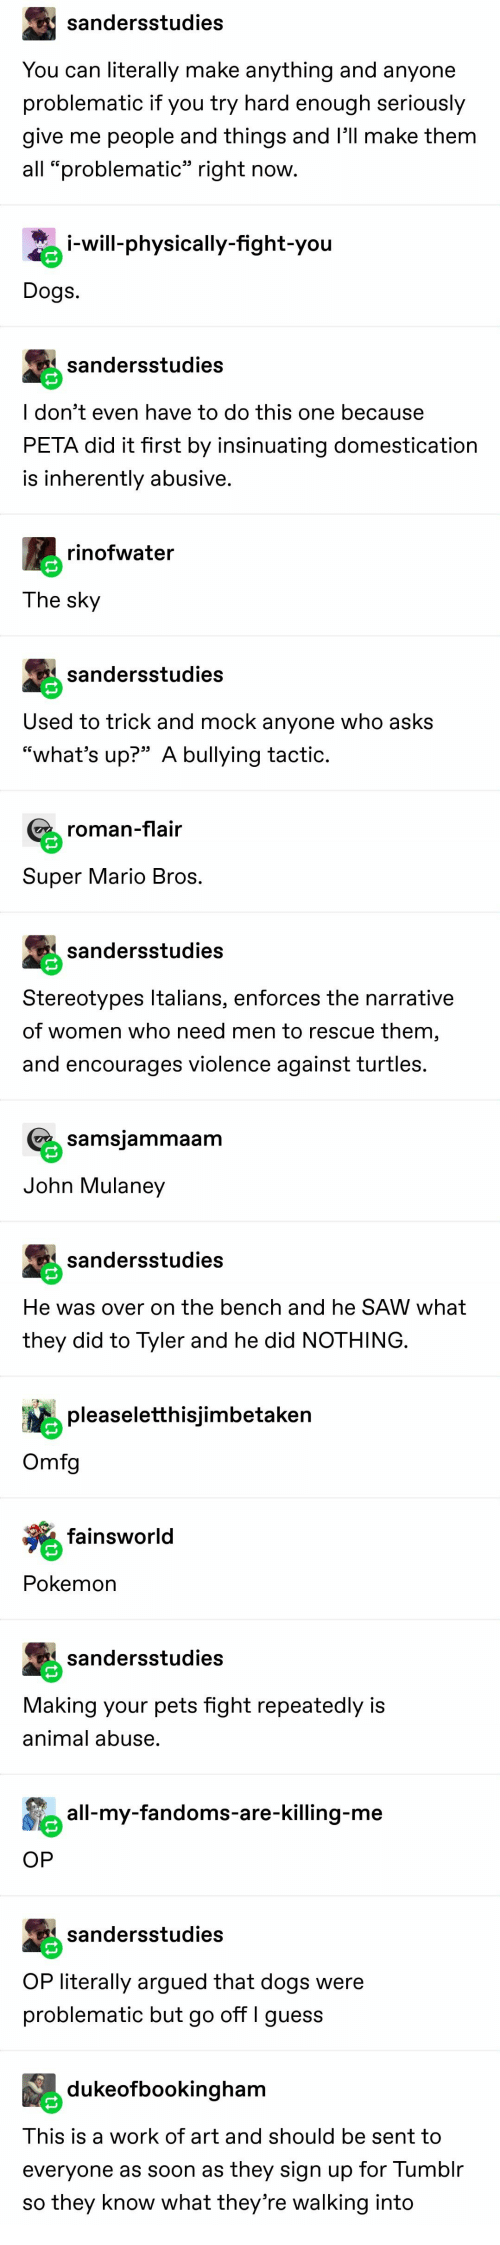 "mario bros: sandersstudies  You can literally make anything and anyone  problematic if you try hard enough seriously  give me people and things and l'll make them  all ""problematic"" right now.  i-will-physically-fight-you  Dogs  sandersstudies  I don't even have to do this one because  PETA did it first by insinuating domestication  is inherently abusive.  rinofwater  The sky  sandersstudies  Used to trick and mock anyone who asks  ""what's up?"" A bullying tactic.  roman-flair  Super Mario Bros.  sandersstudies  Stereotypes Italians, enforces the narrative  of women who need men to rescue them,  and encourages violence against turtles.  samsjammaam  John Mulaney  sandersstudies  He was over on the bench and he SAW what  they did to Tyler and he did NOTHING.  pleaseletthisjimbetaken  Omfg  fainsworld  Pokemon  sandersstudies  Making your pets fight repeatedly is  animal abuse.  all-my-fandoms-are-killing-me  OP  sandersstudies  OP literally argued that dogs were  problematic but go off I guess  dukeofbookingham  This is a work of art and should be sent to  everyone as soon as they sign up for Tumblr  so they know what they're walking into"